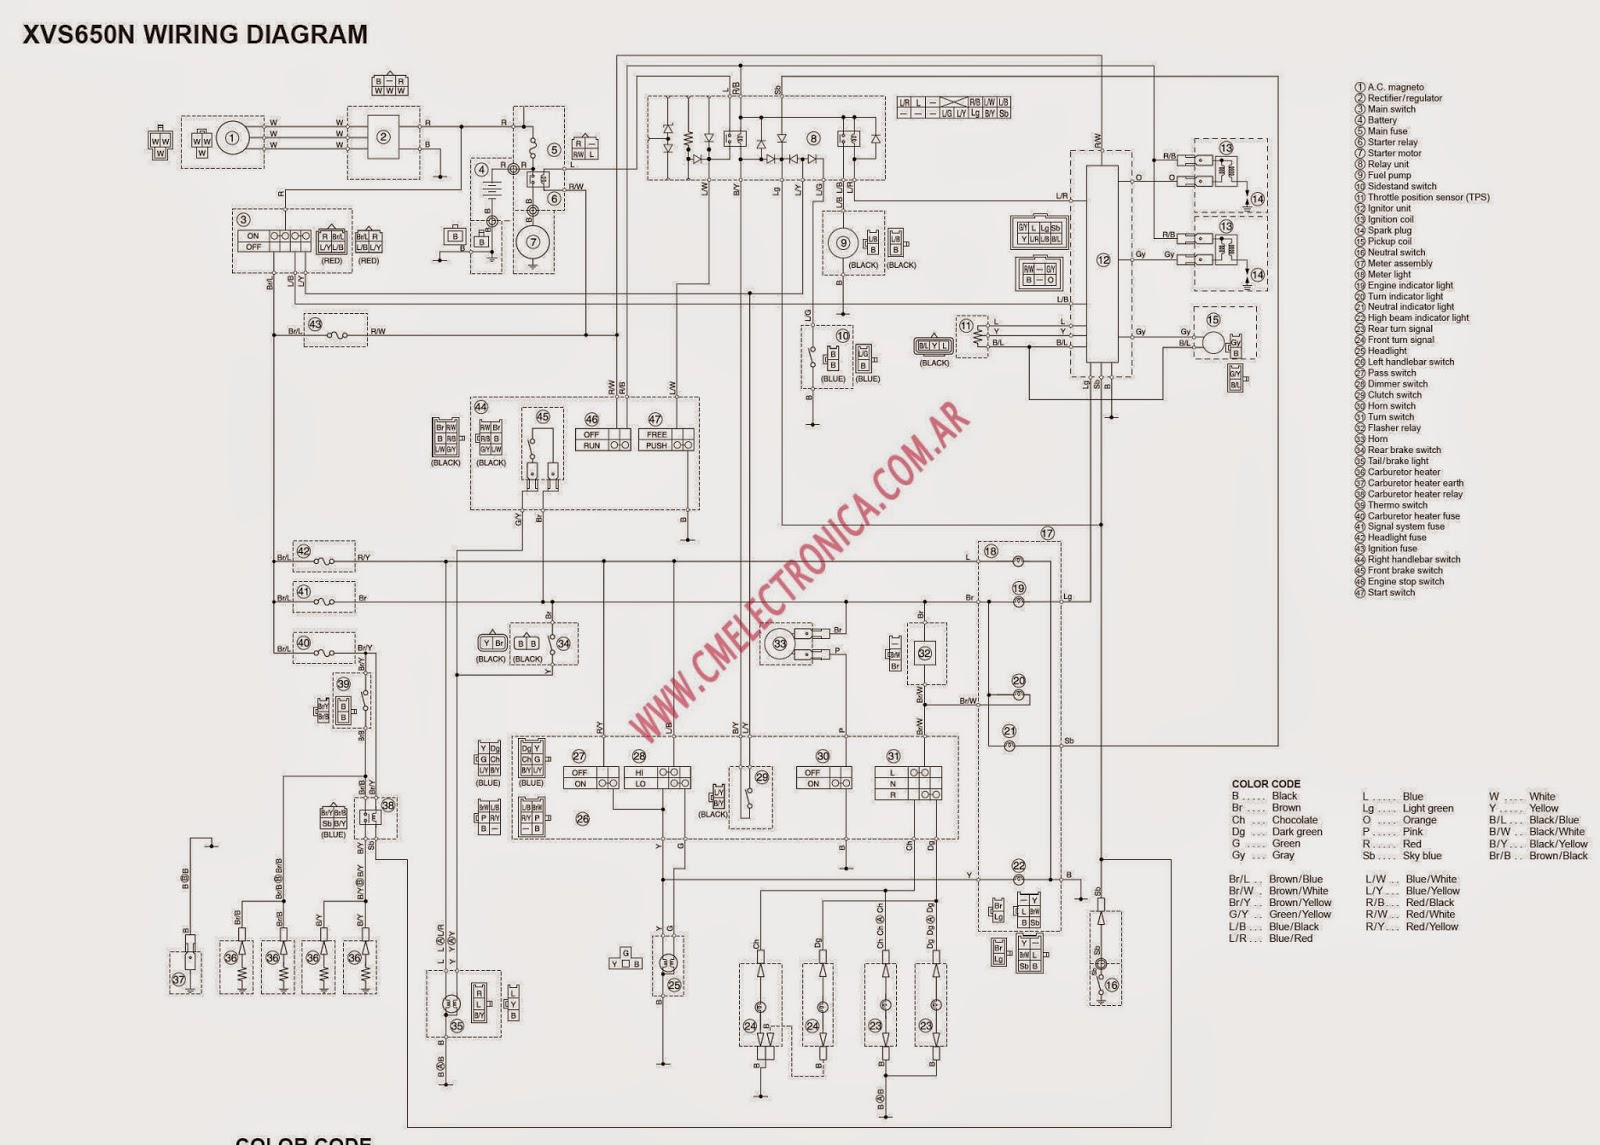 small resolution of yamaha bws wiring diagram simple wiring schema basic house wiring diagrams yamaha v star 950 wiring